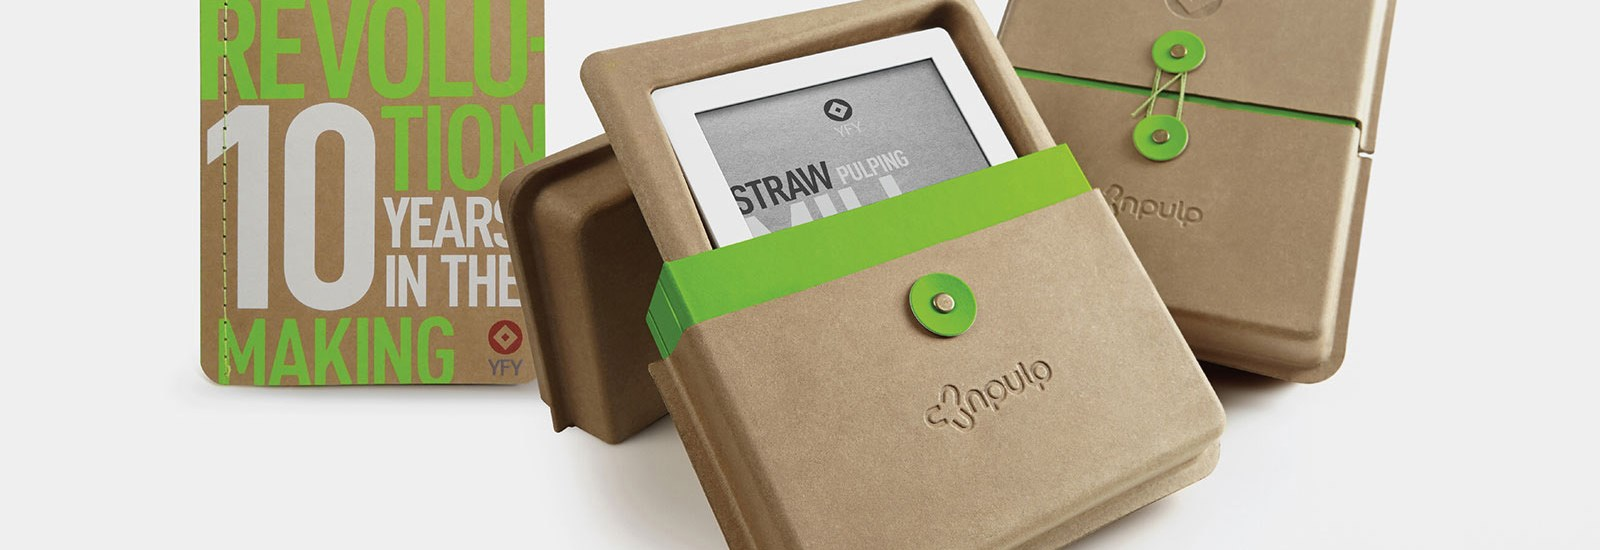 nPulp sustainable packaging made from straw